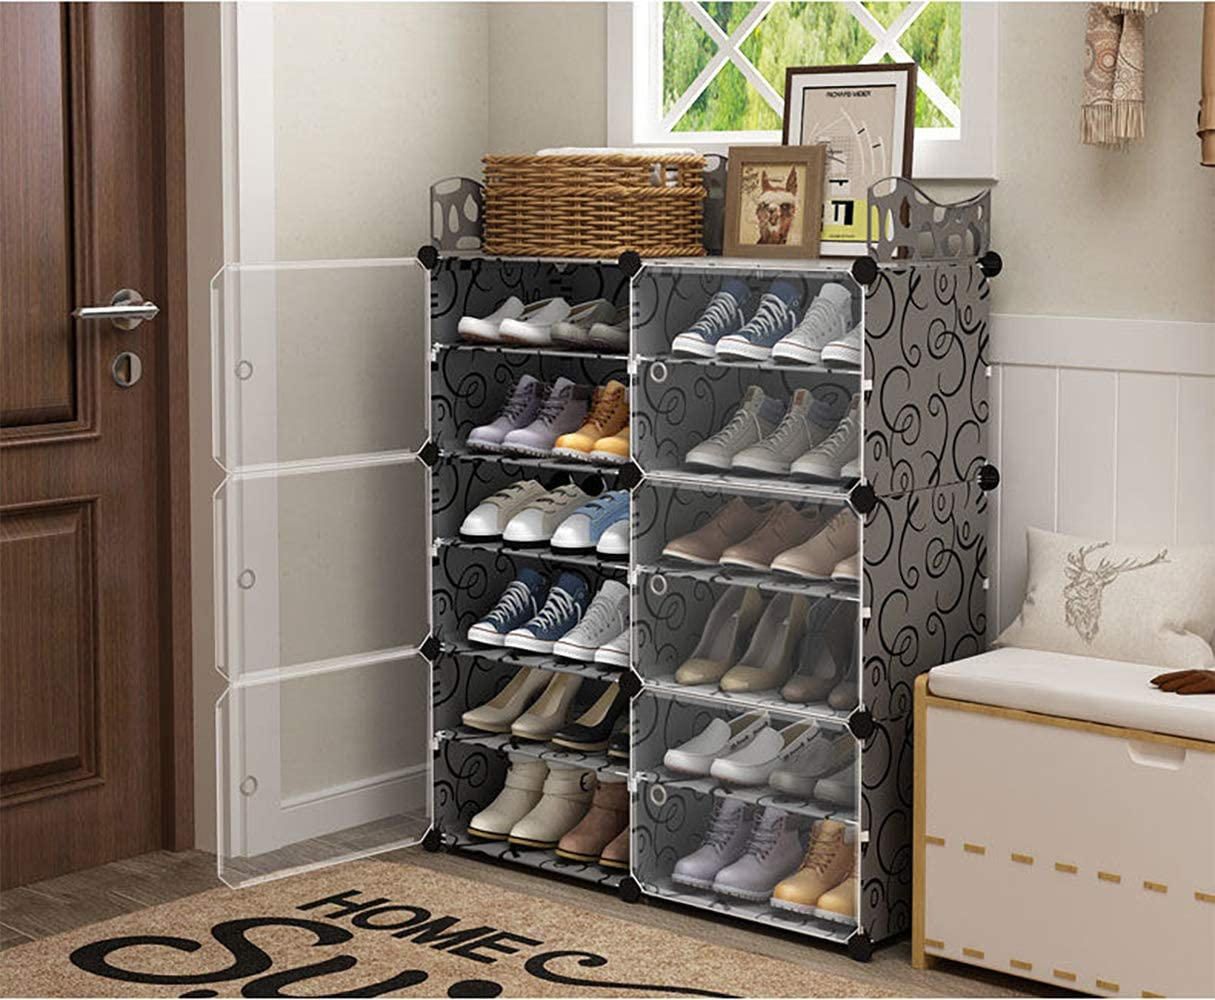 Shoe storage with transparent covers filled with shoes